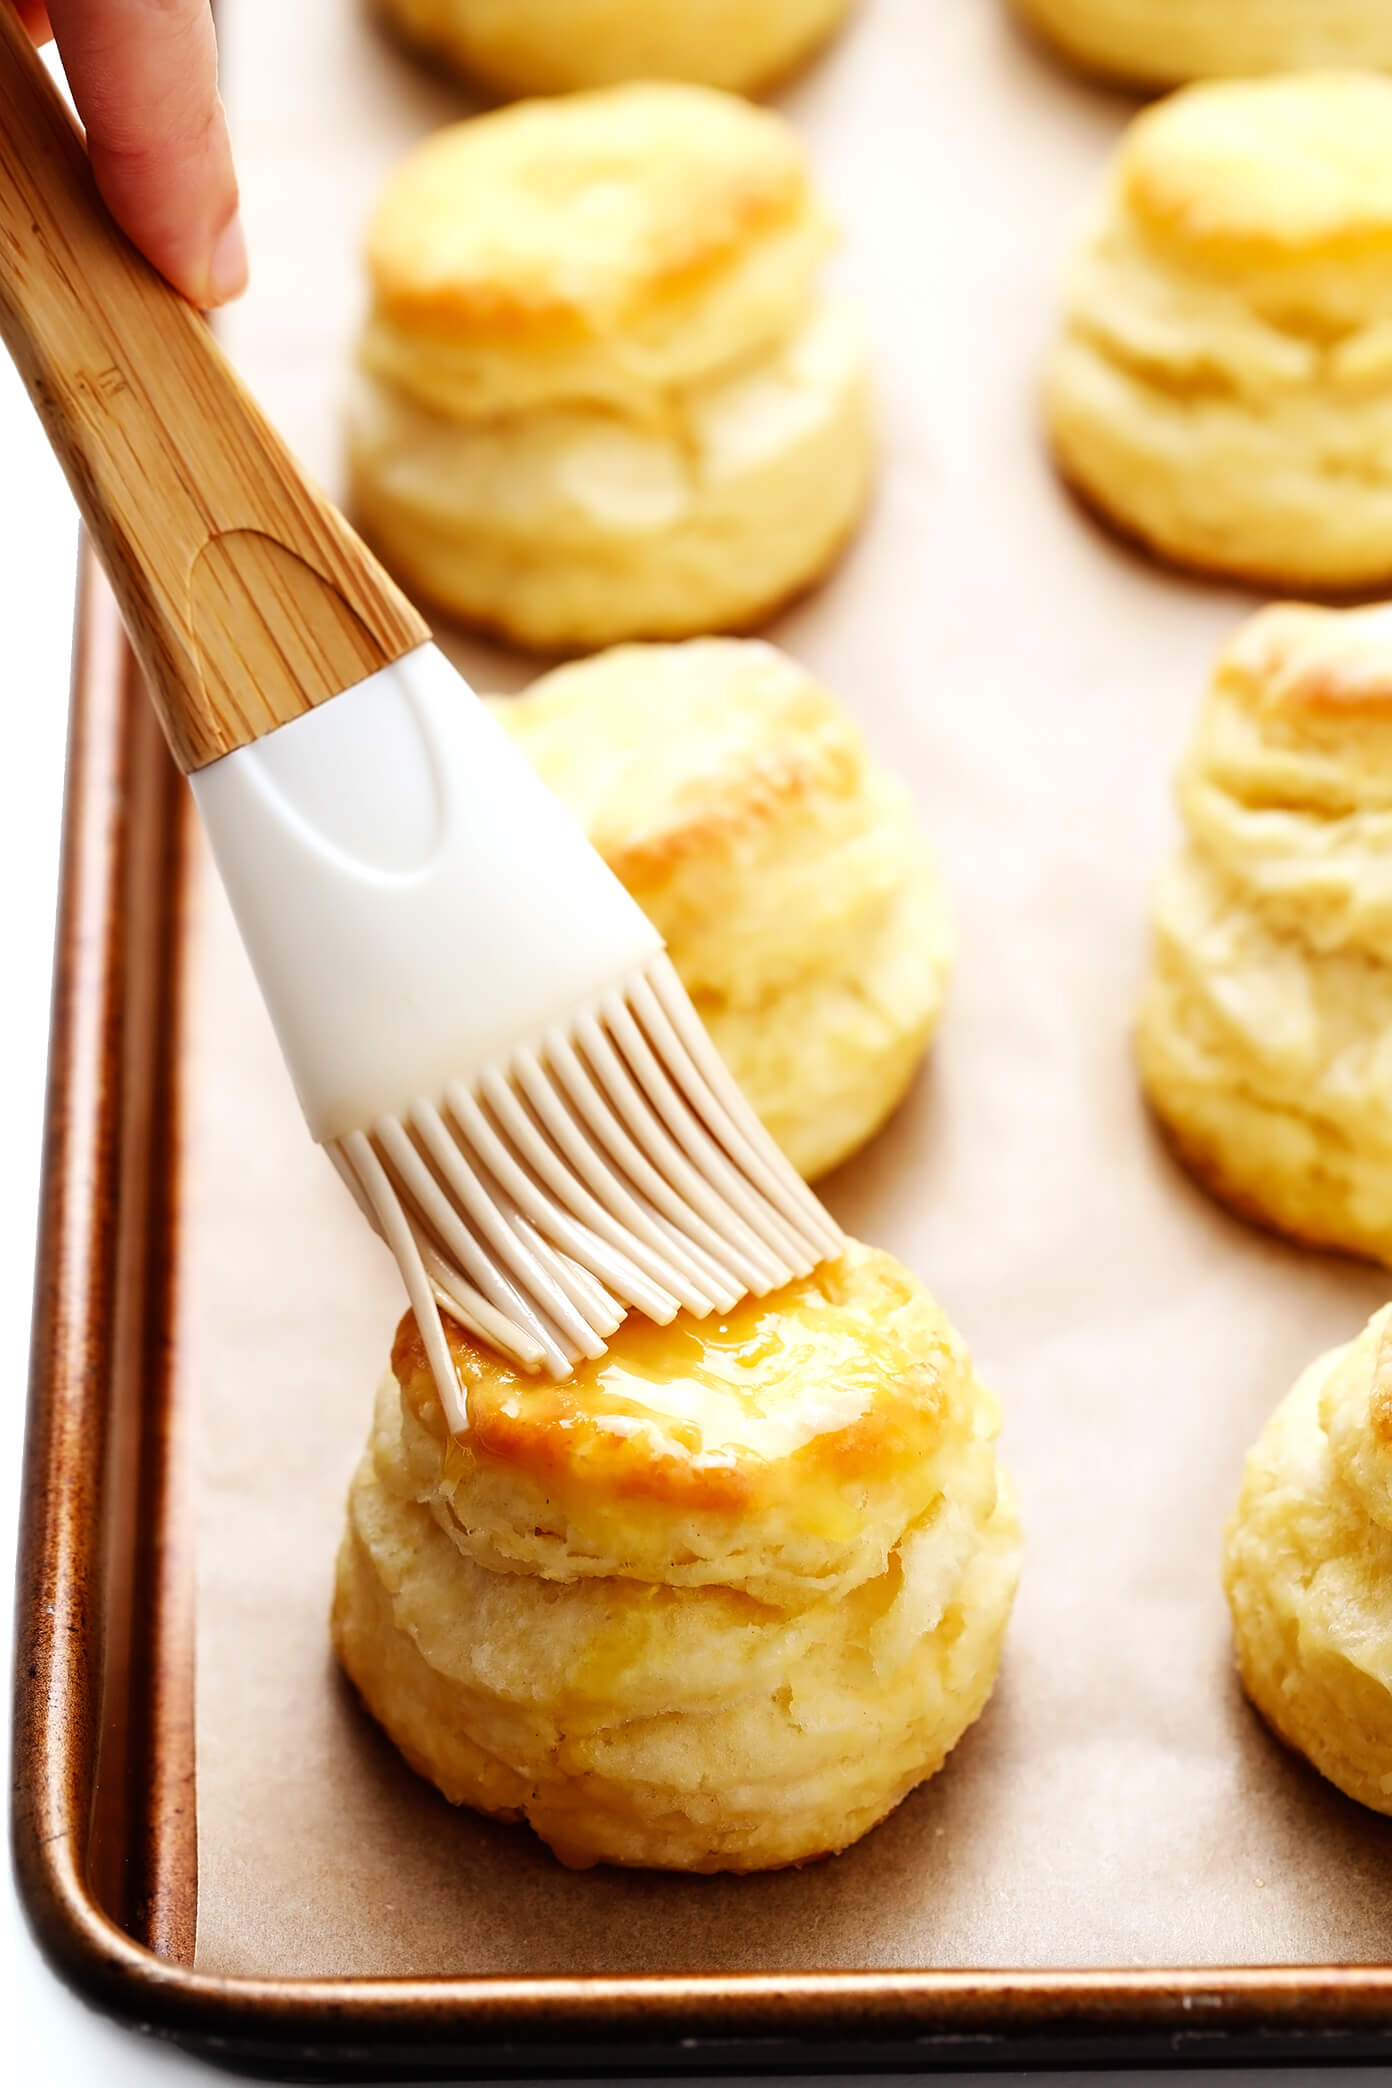 Brushing butter on homemade biscuits